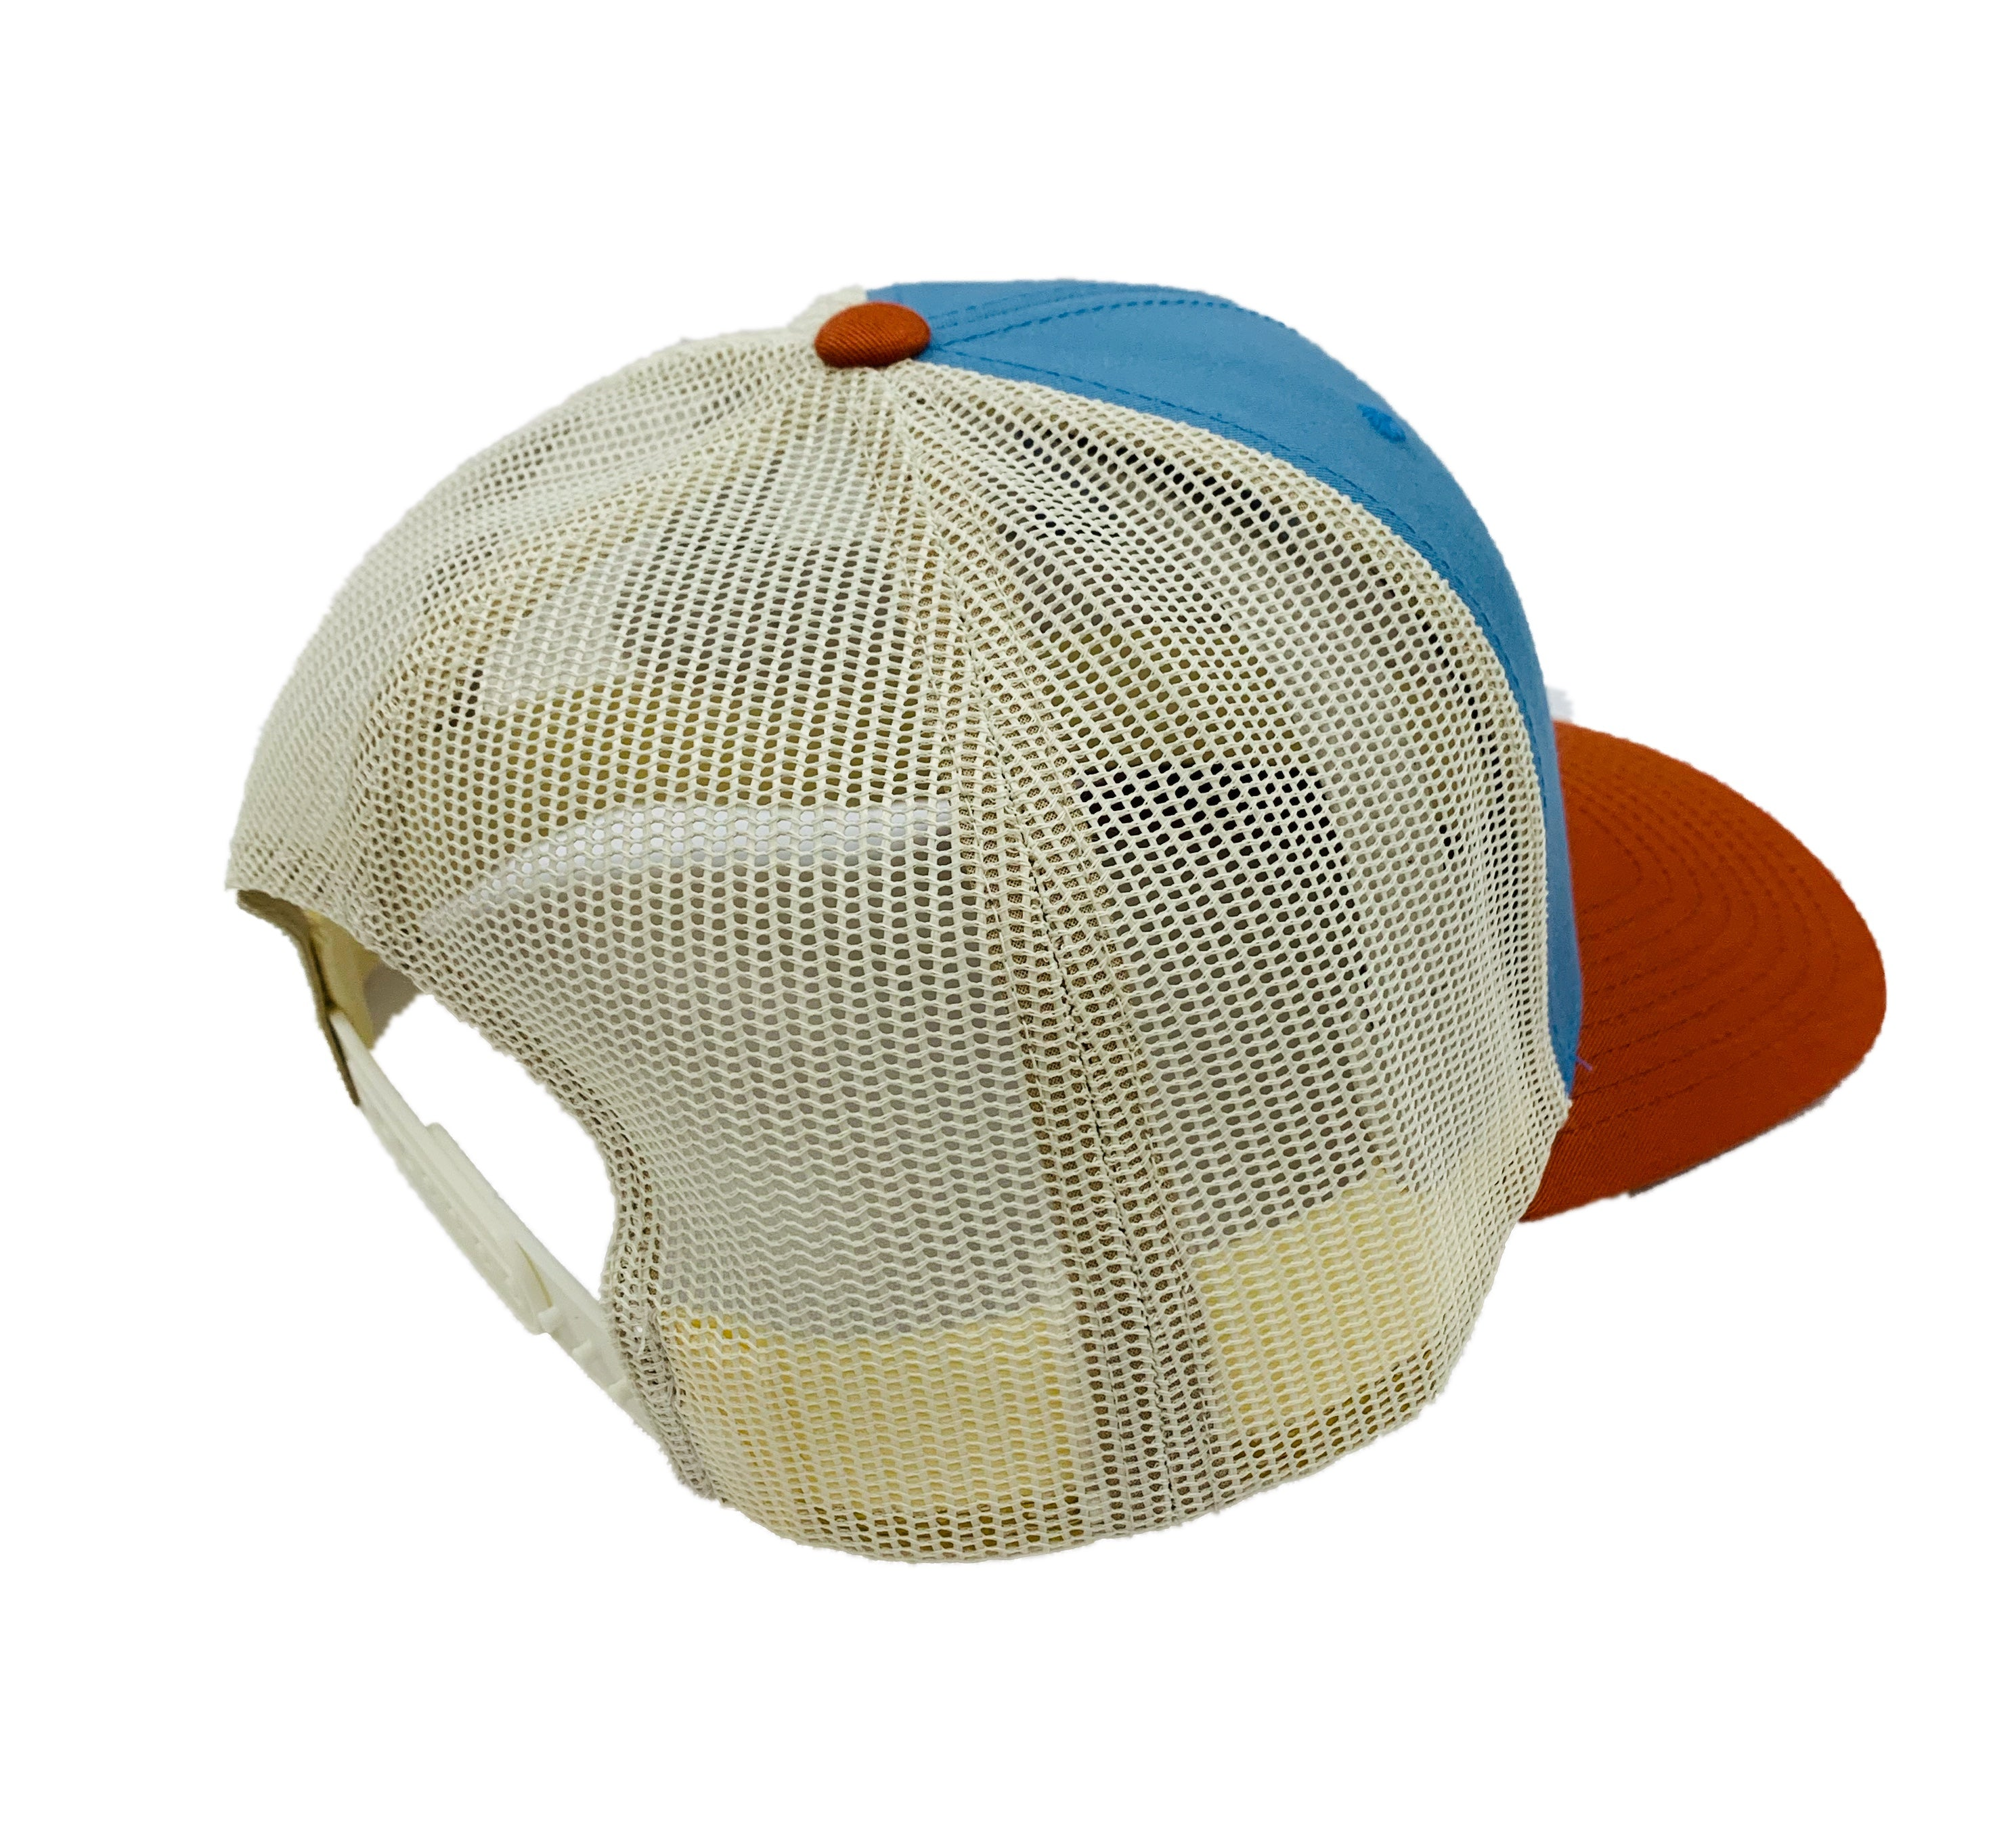 LOCALS 3D CURVED BILL TRUCKER COLUMBIA BLUE/BIRCH/DARK ORANGE